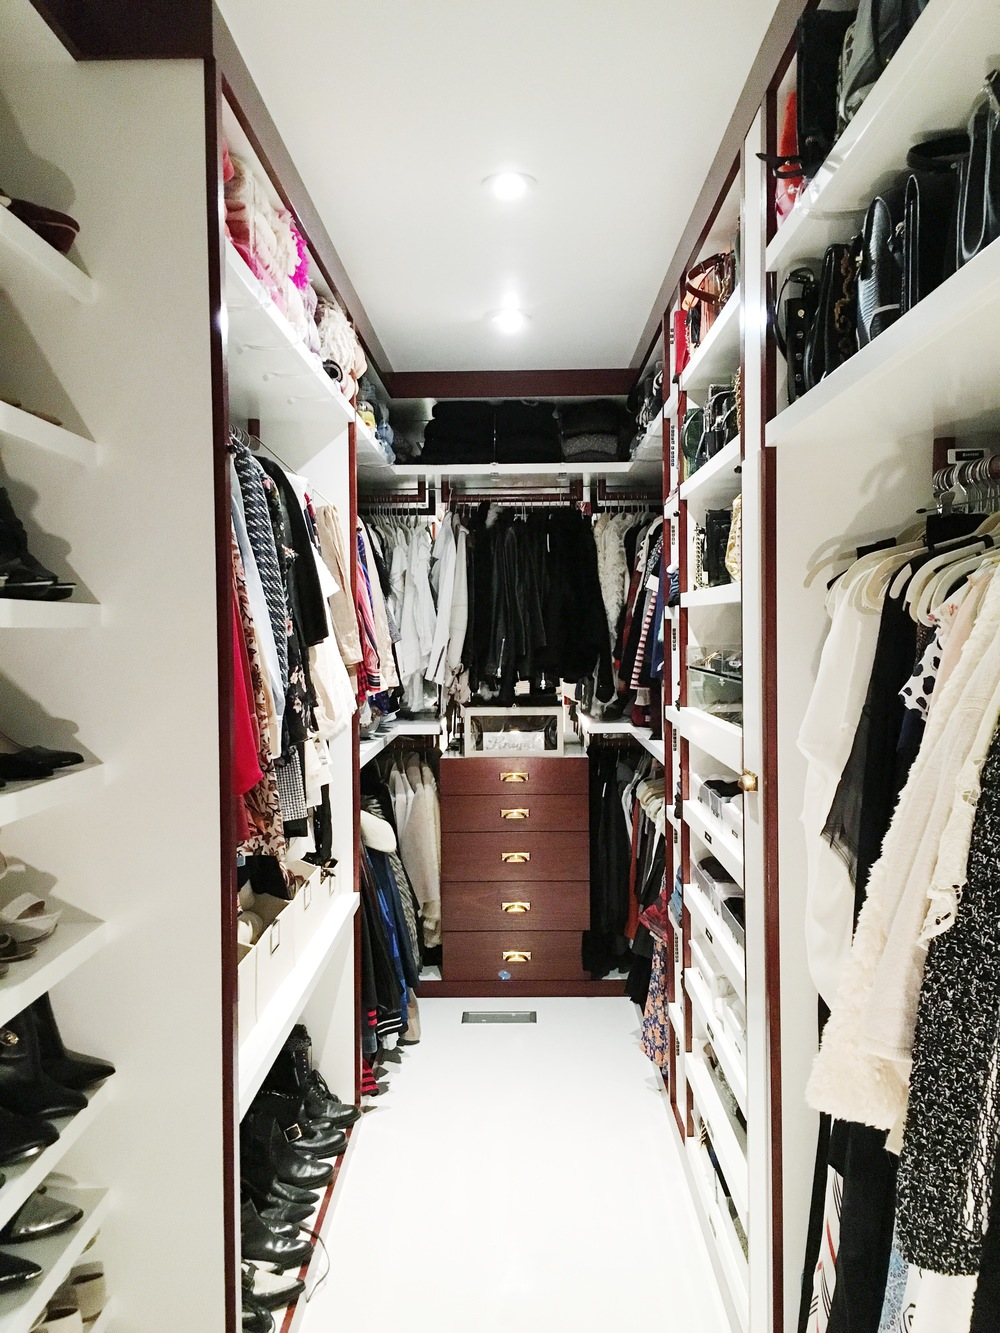 The completed closet.